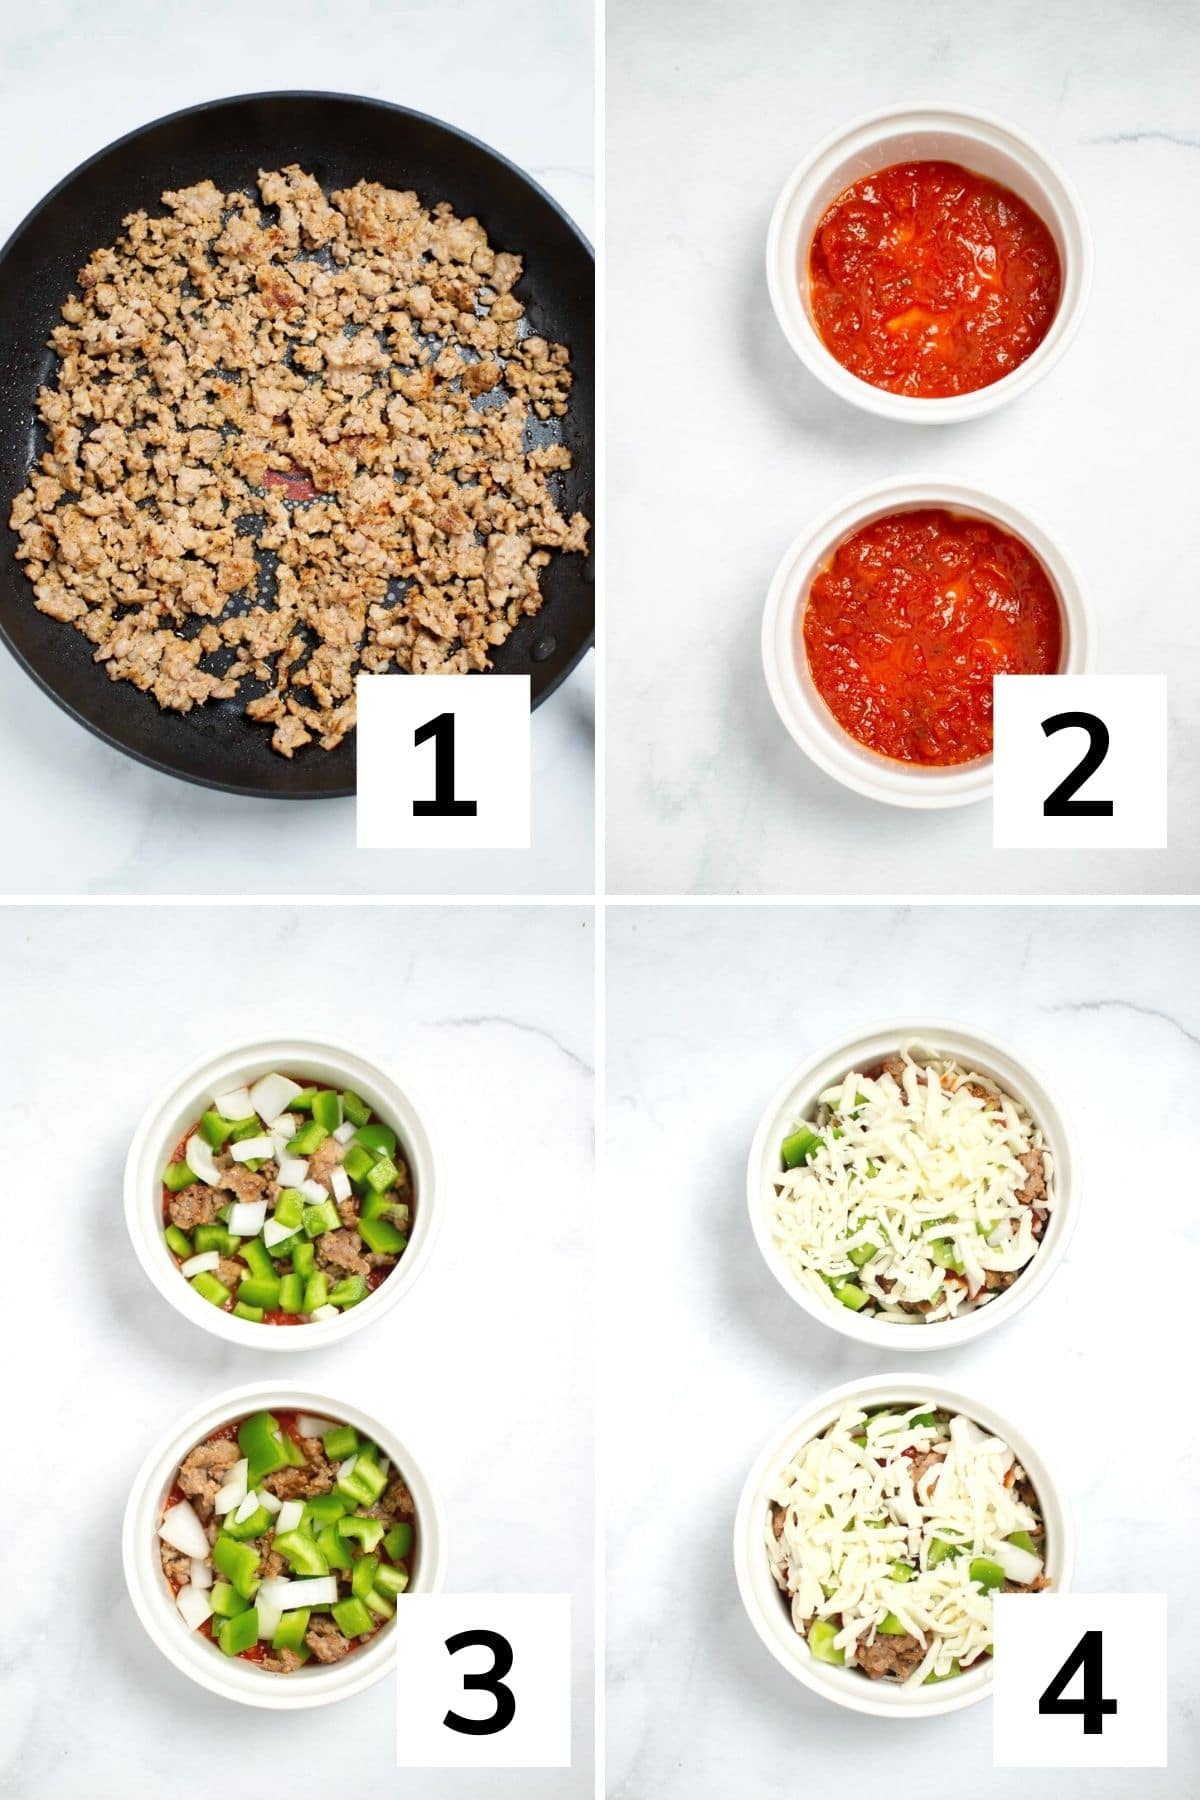 How to make a pizza bowl step by step instructions.